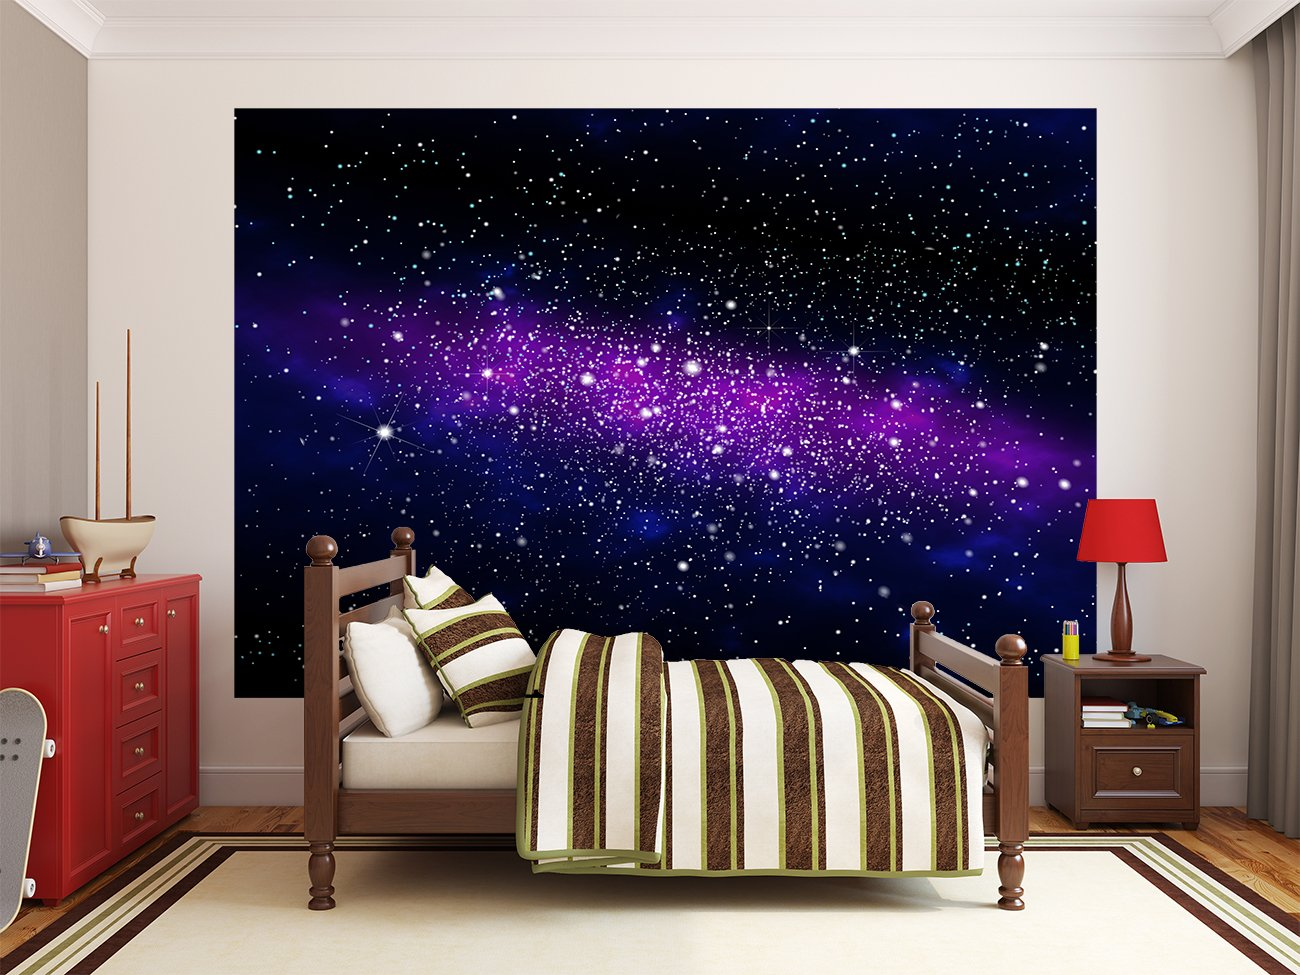 poster stars wall picture decoration childrens room outer space poster stars wall picture decoration childrens room outer space sky galaxy universe cosmos starry sky milky way super nova wallposter photoposter wall